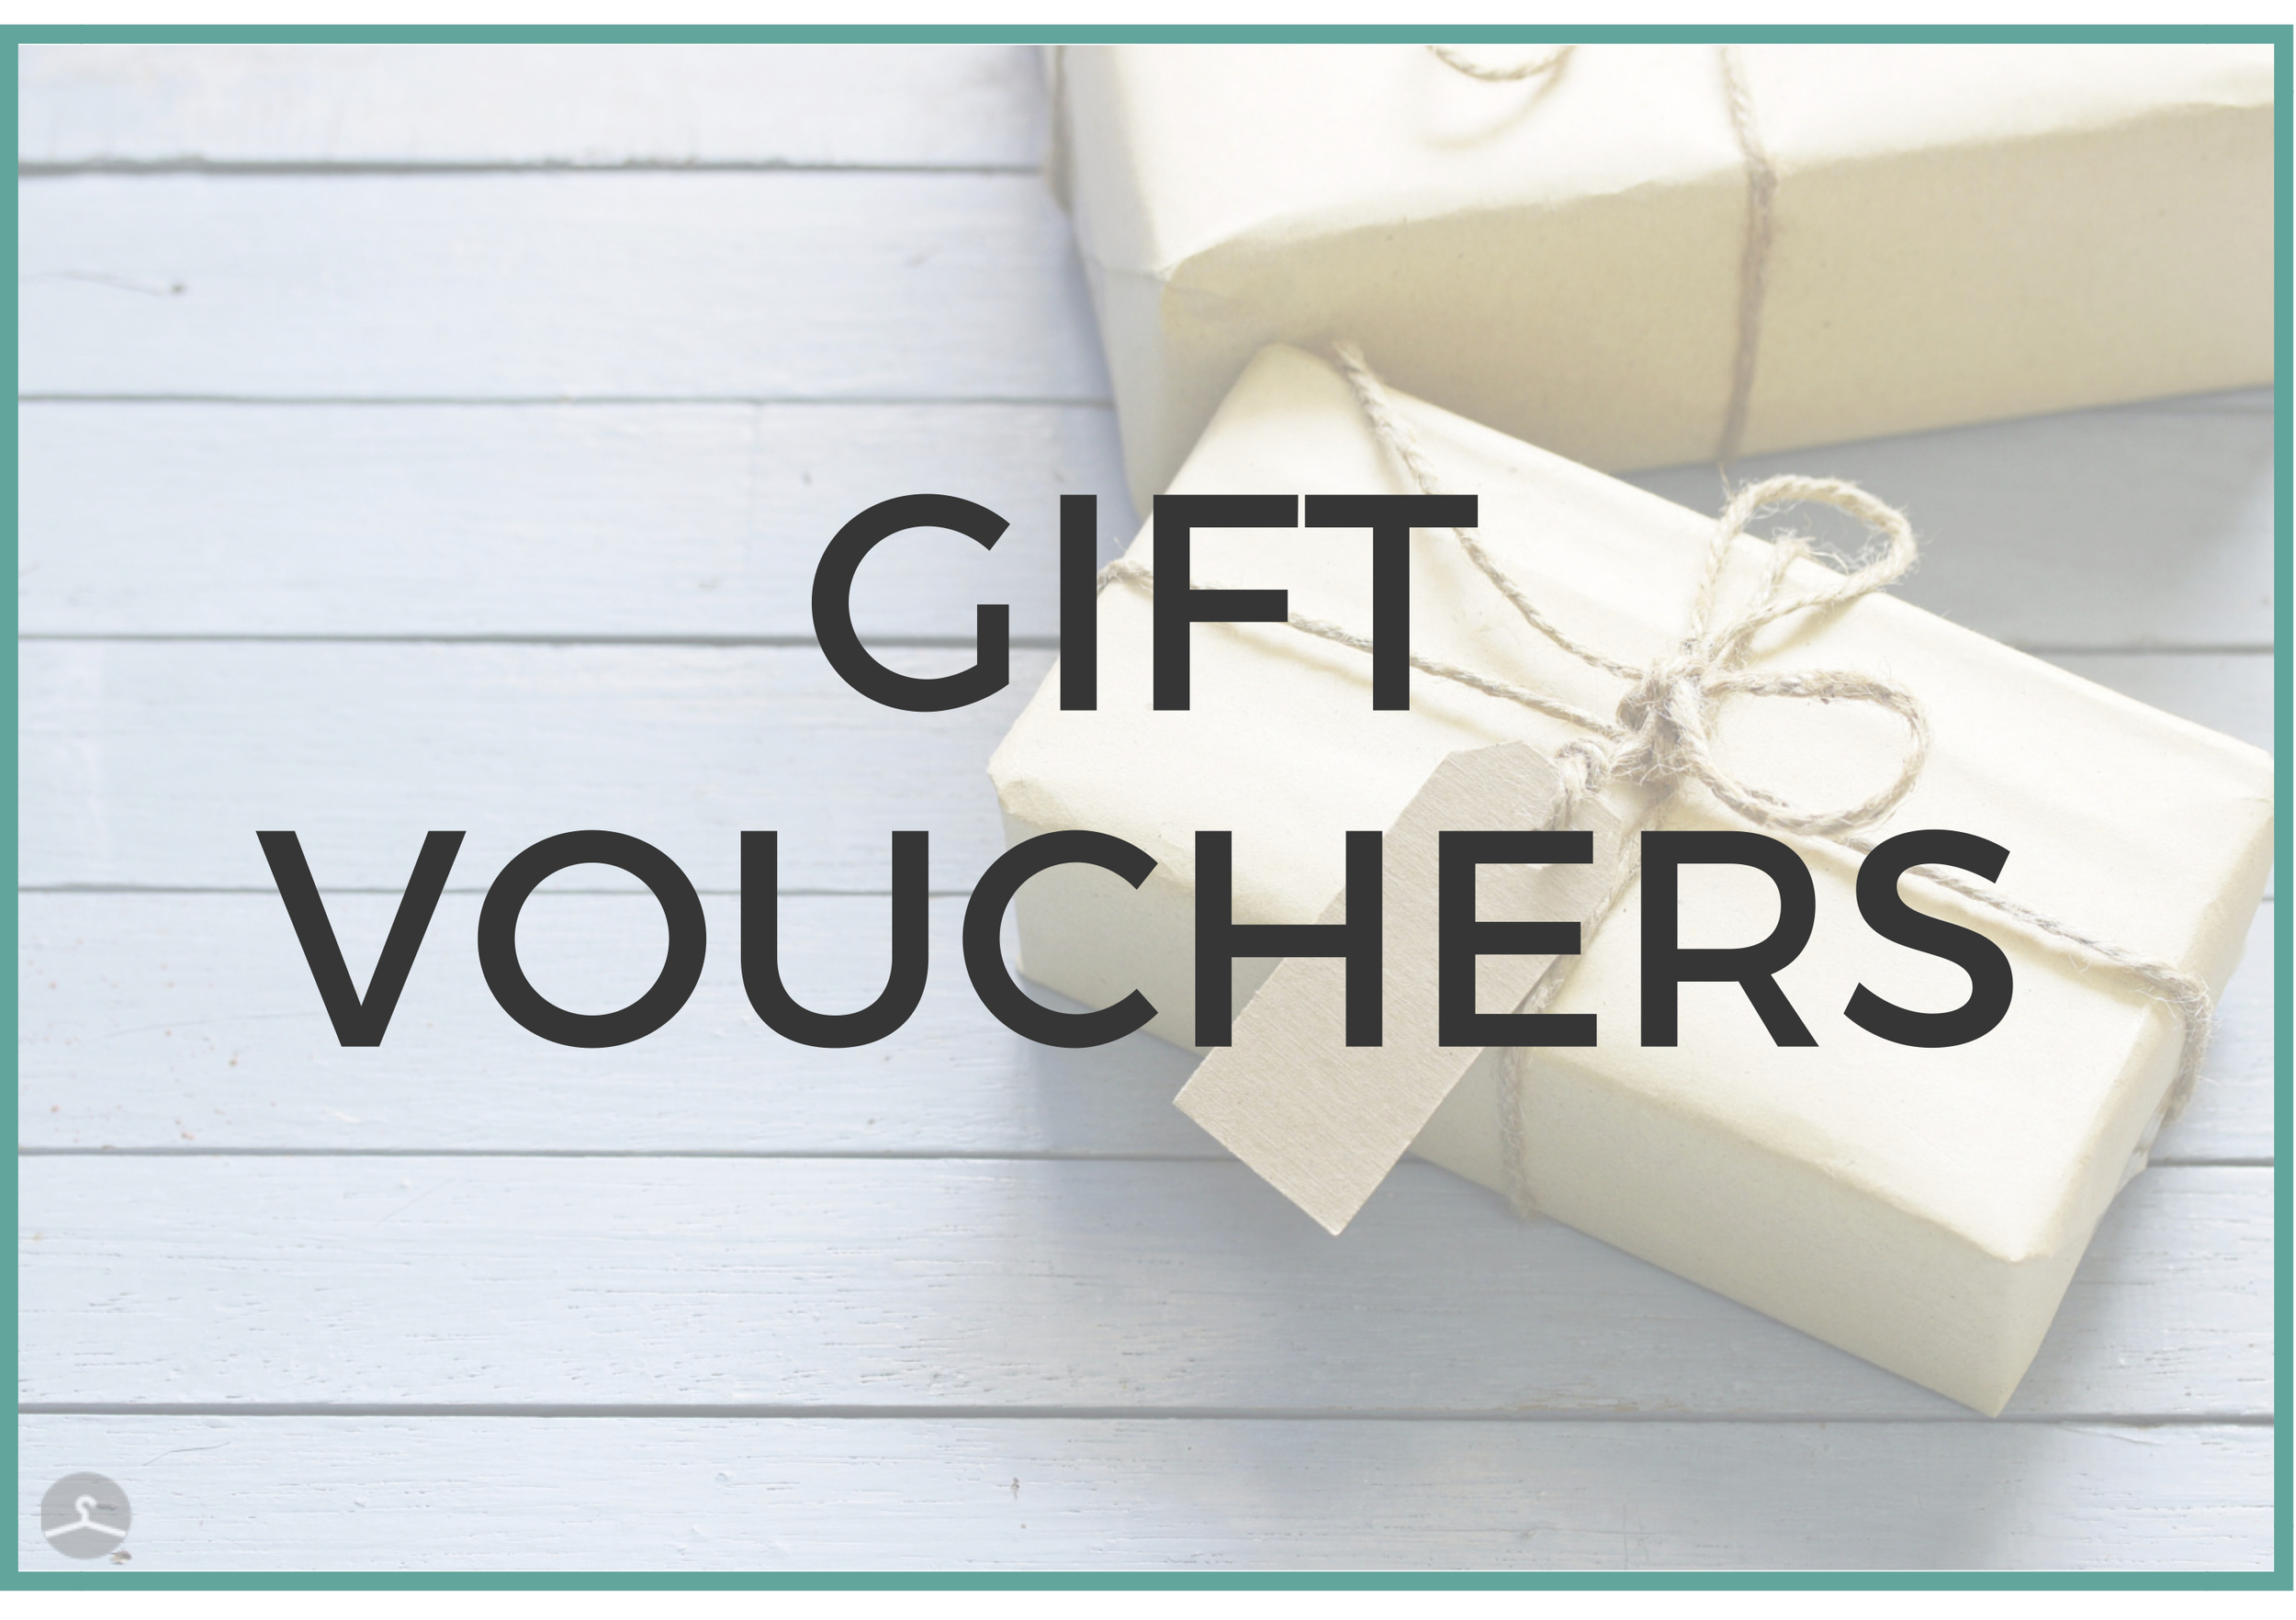 Personal styling gift vouchers